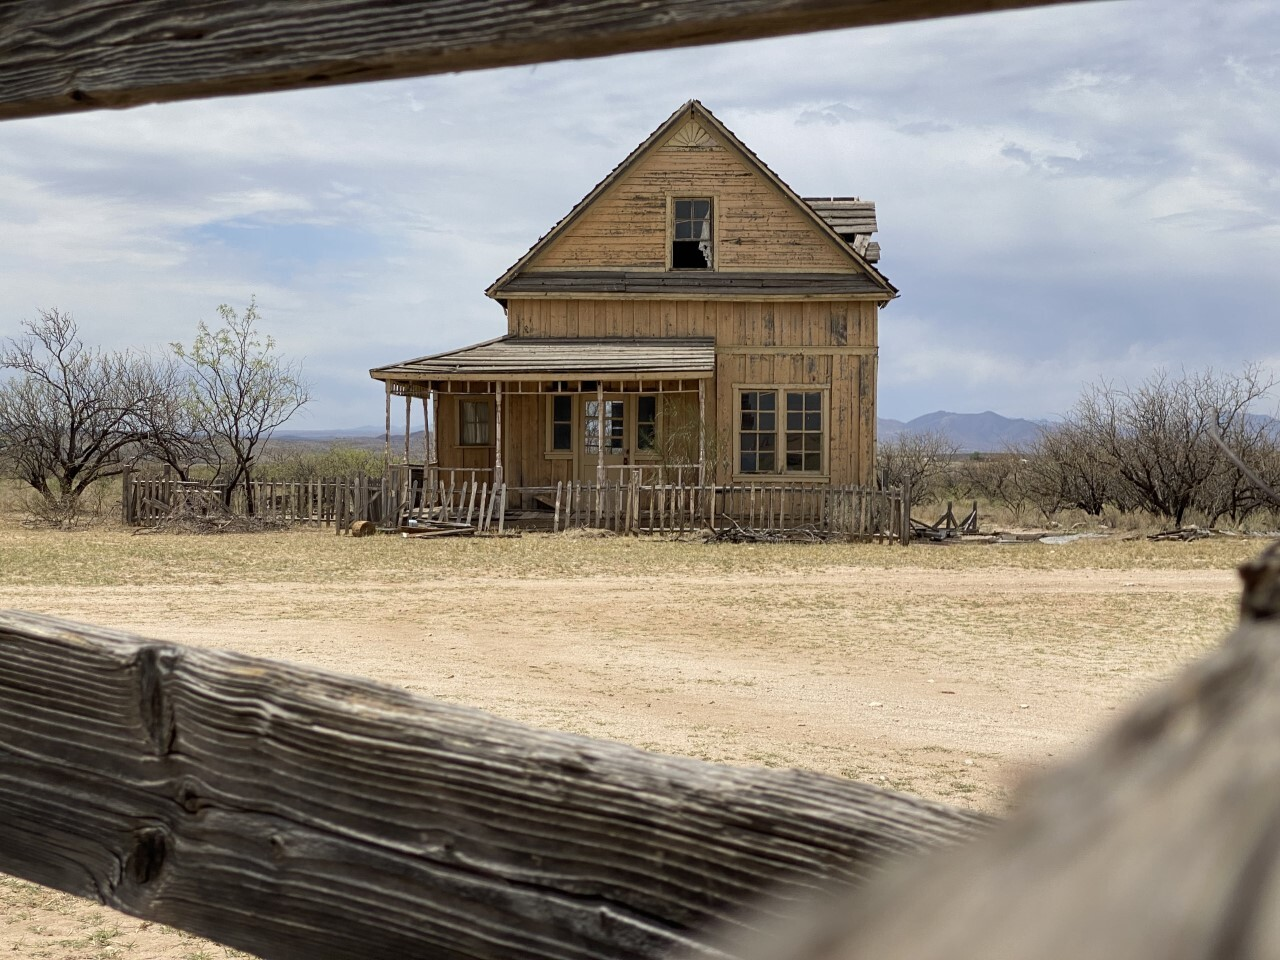 Wyatt Earps house in the movie Tombstone filmed at Mescal Movie Set